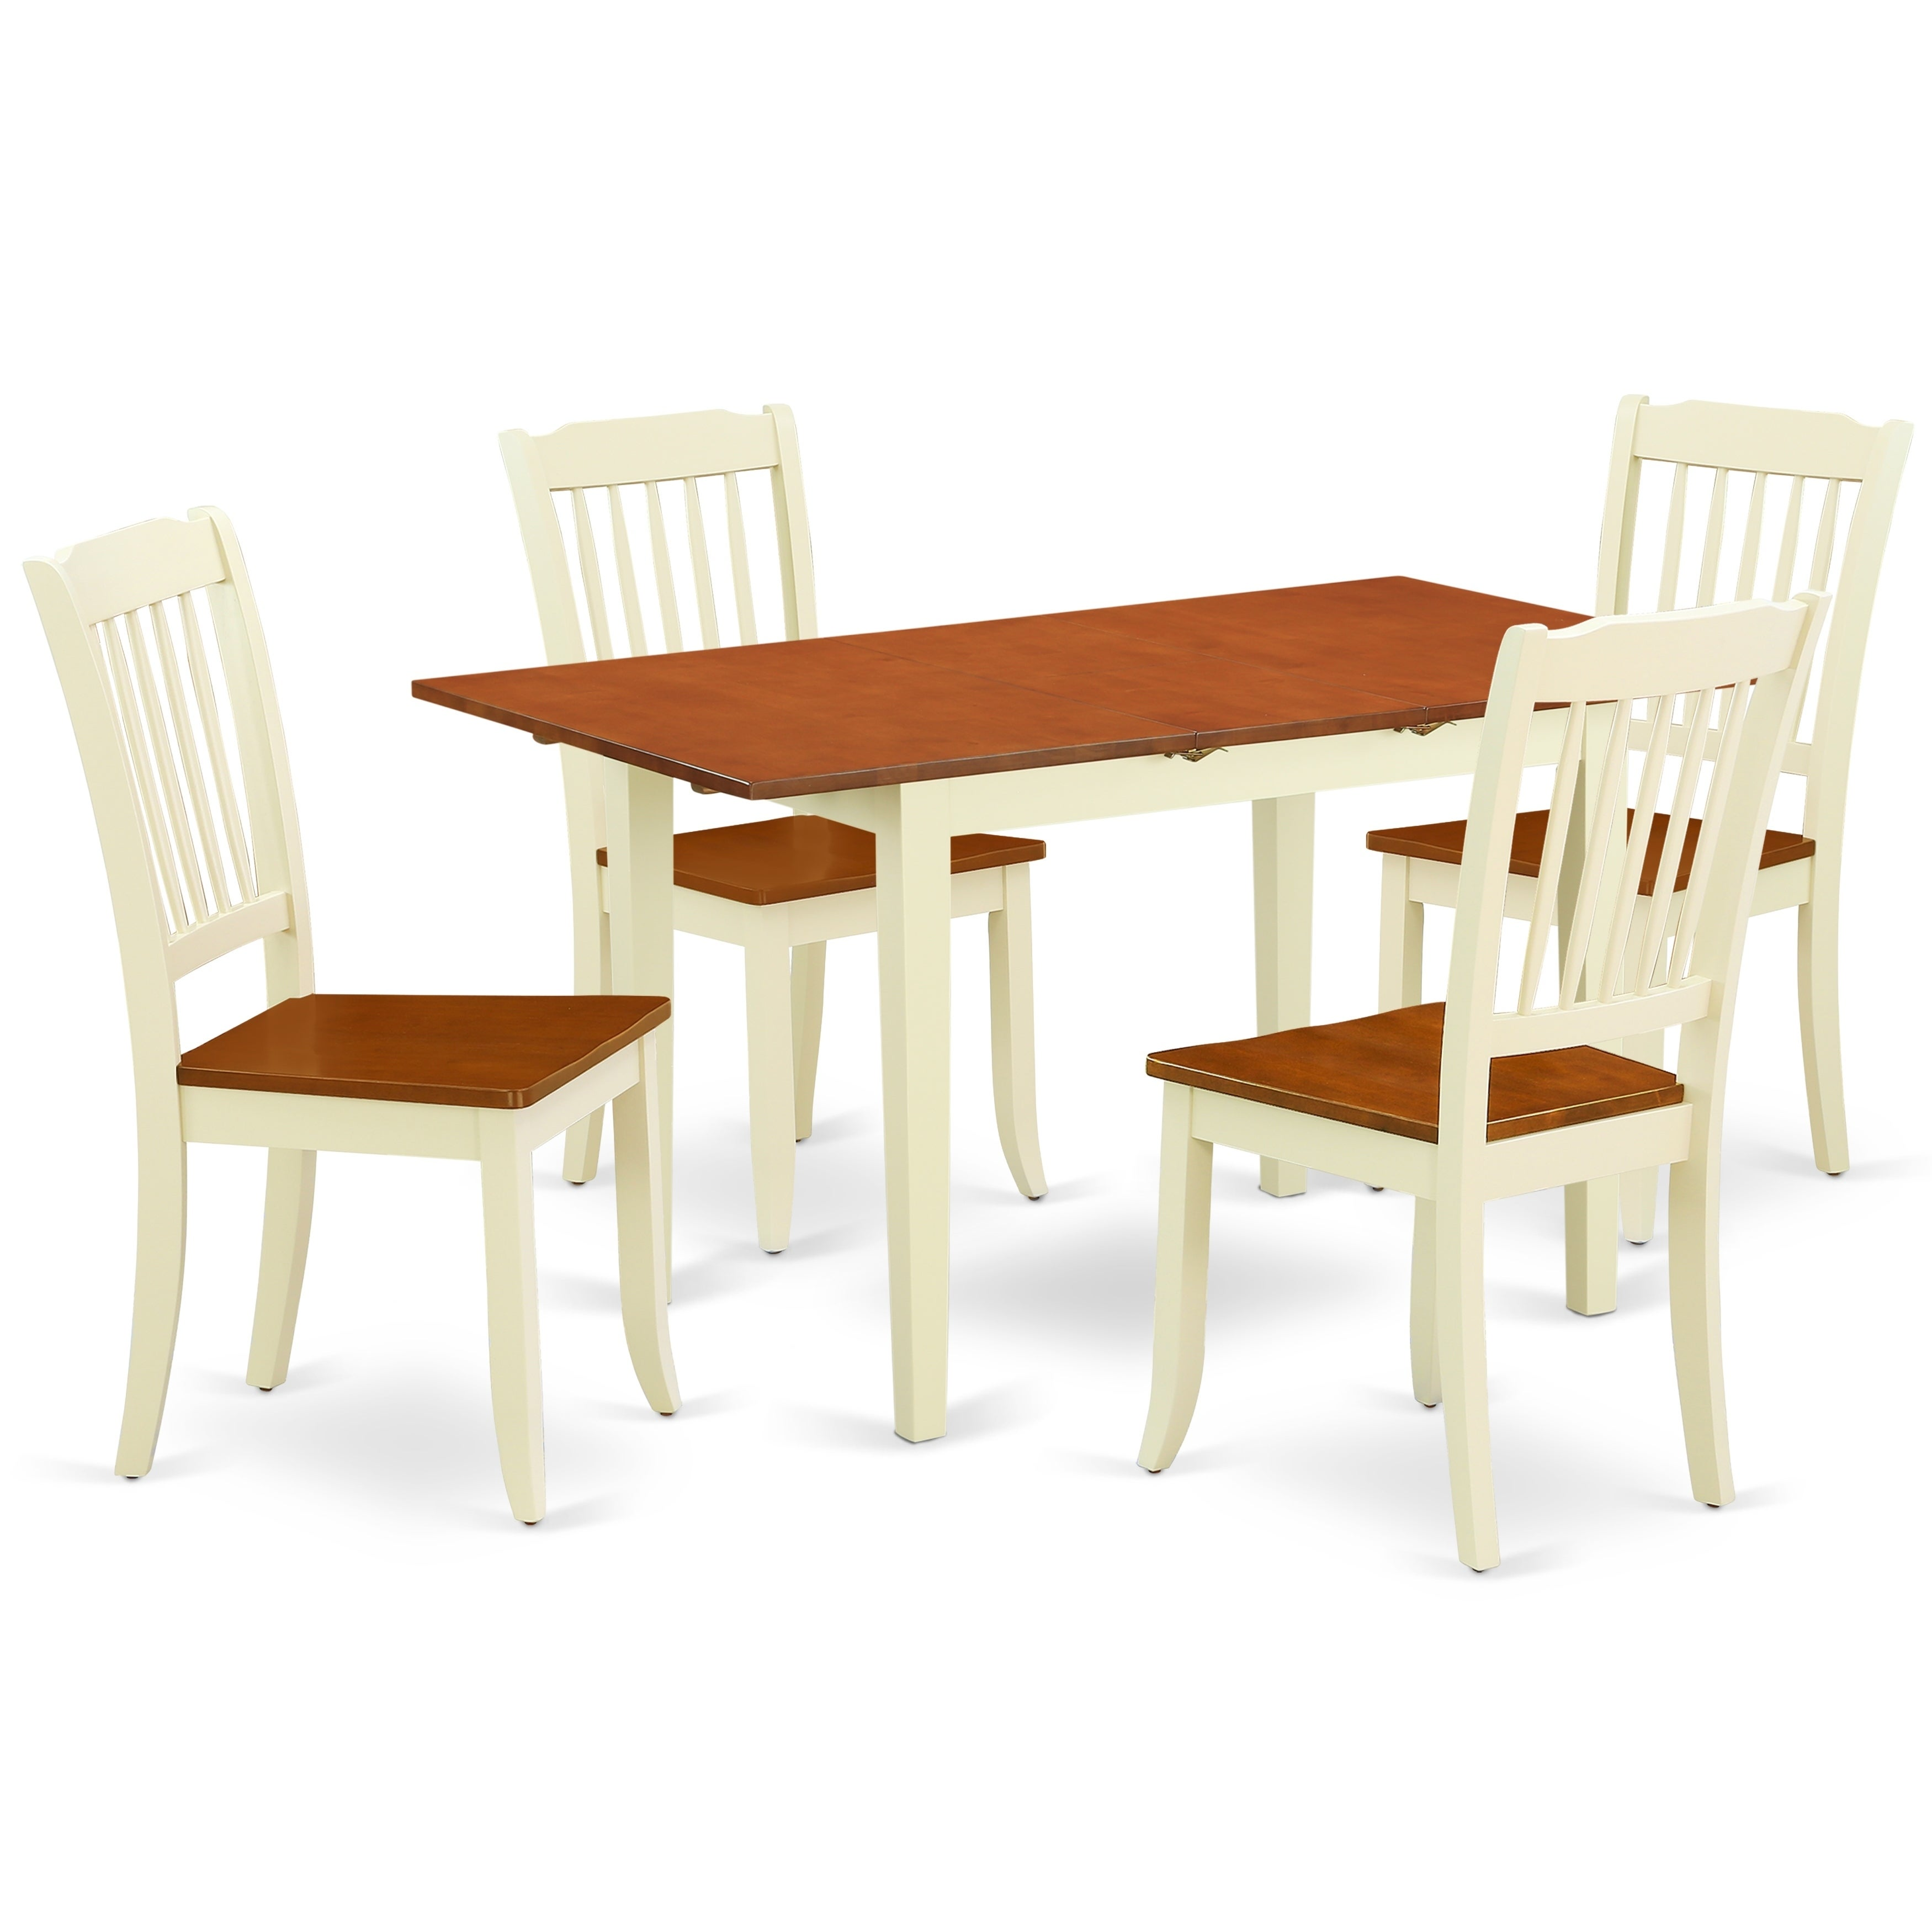 Rectangular 42 53 5 Inch Table With 12 Leaf And 2 Vertical Slatted Chairs Number Of Option